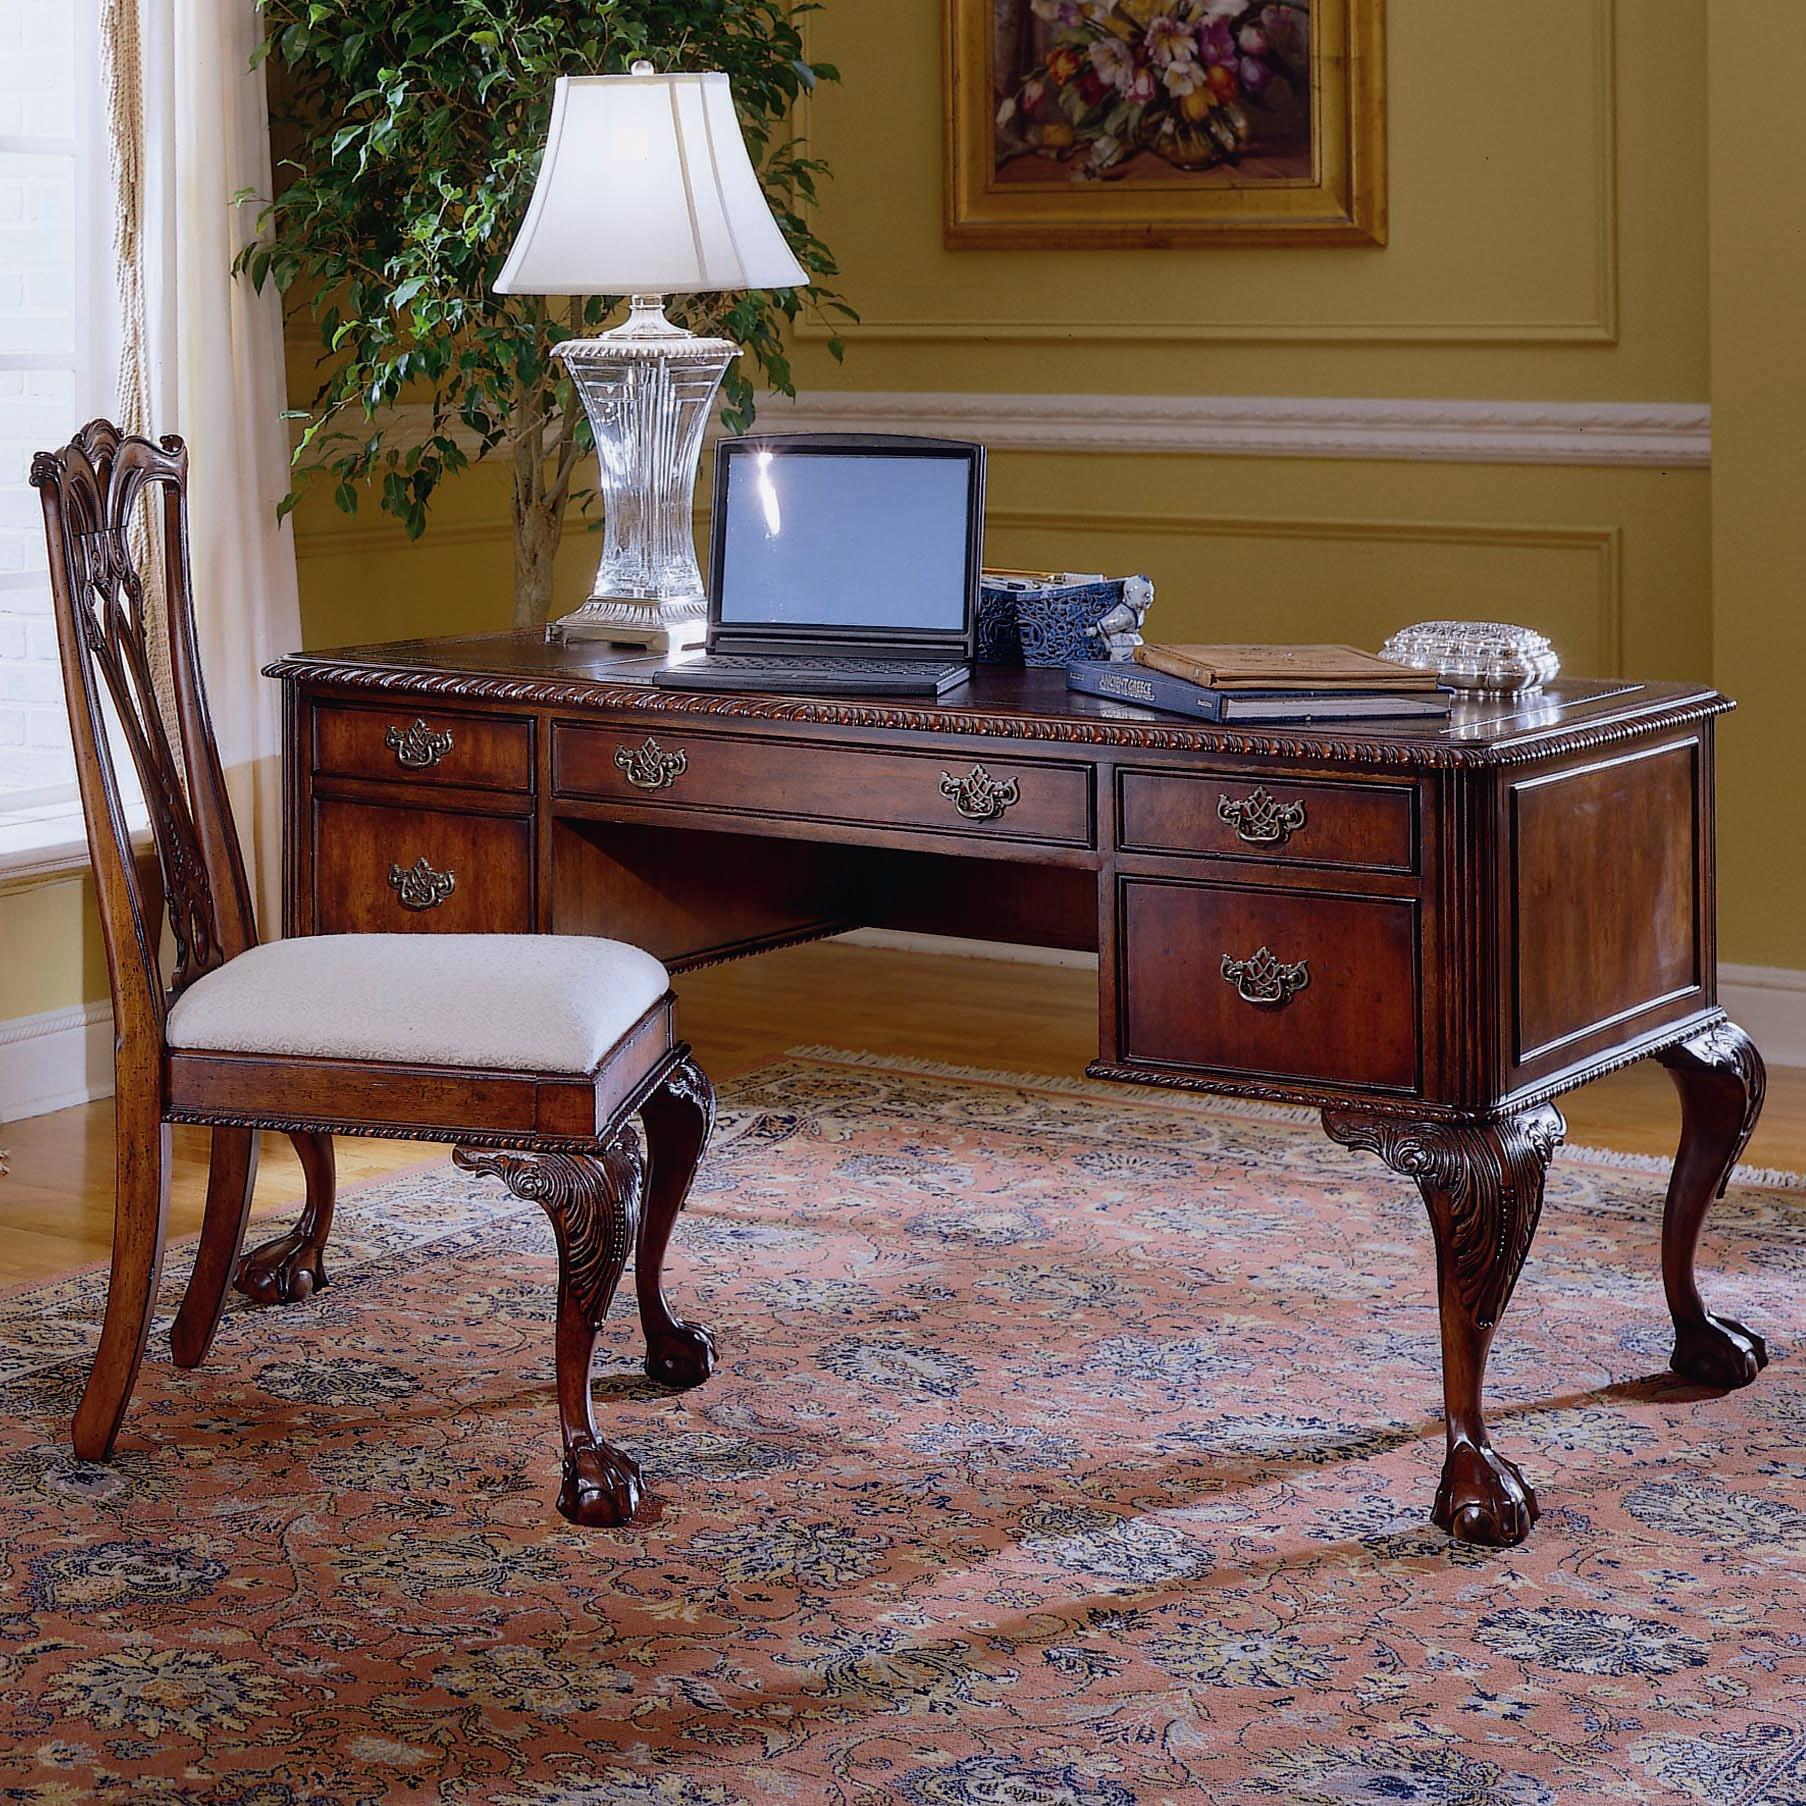 Hooker Furniture 434 Ball Claw Writing Desk  - Item Number: 434-10-158